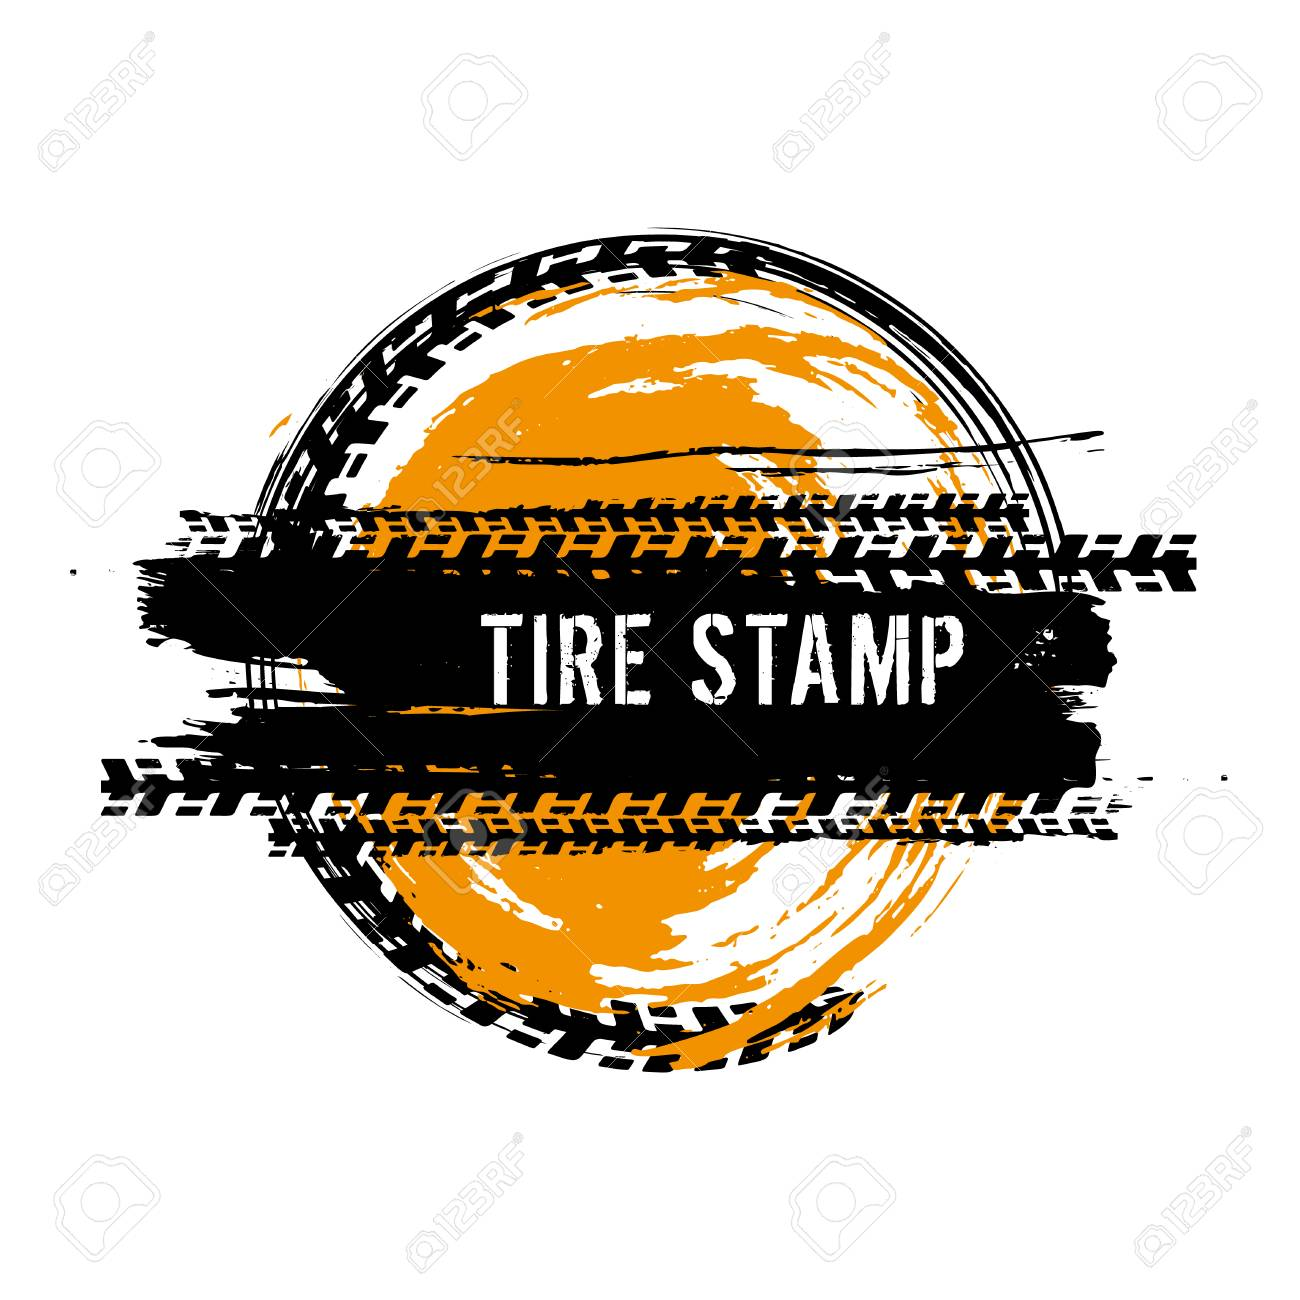 Grunge Off Road Post And Quality Stamp Automotive Element Useful Royalty Free Cliparts Vectors And Stock Illustration Image 92662400